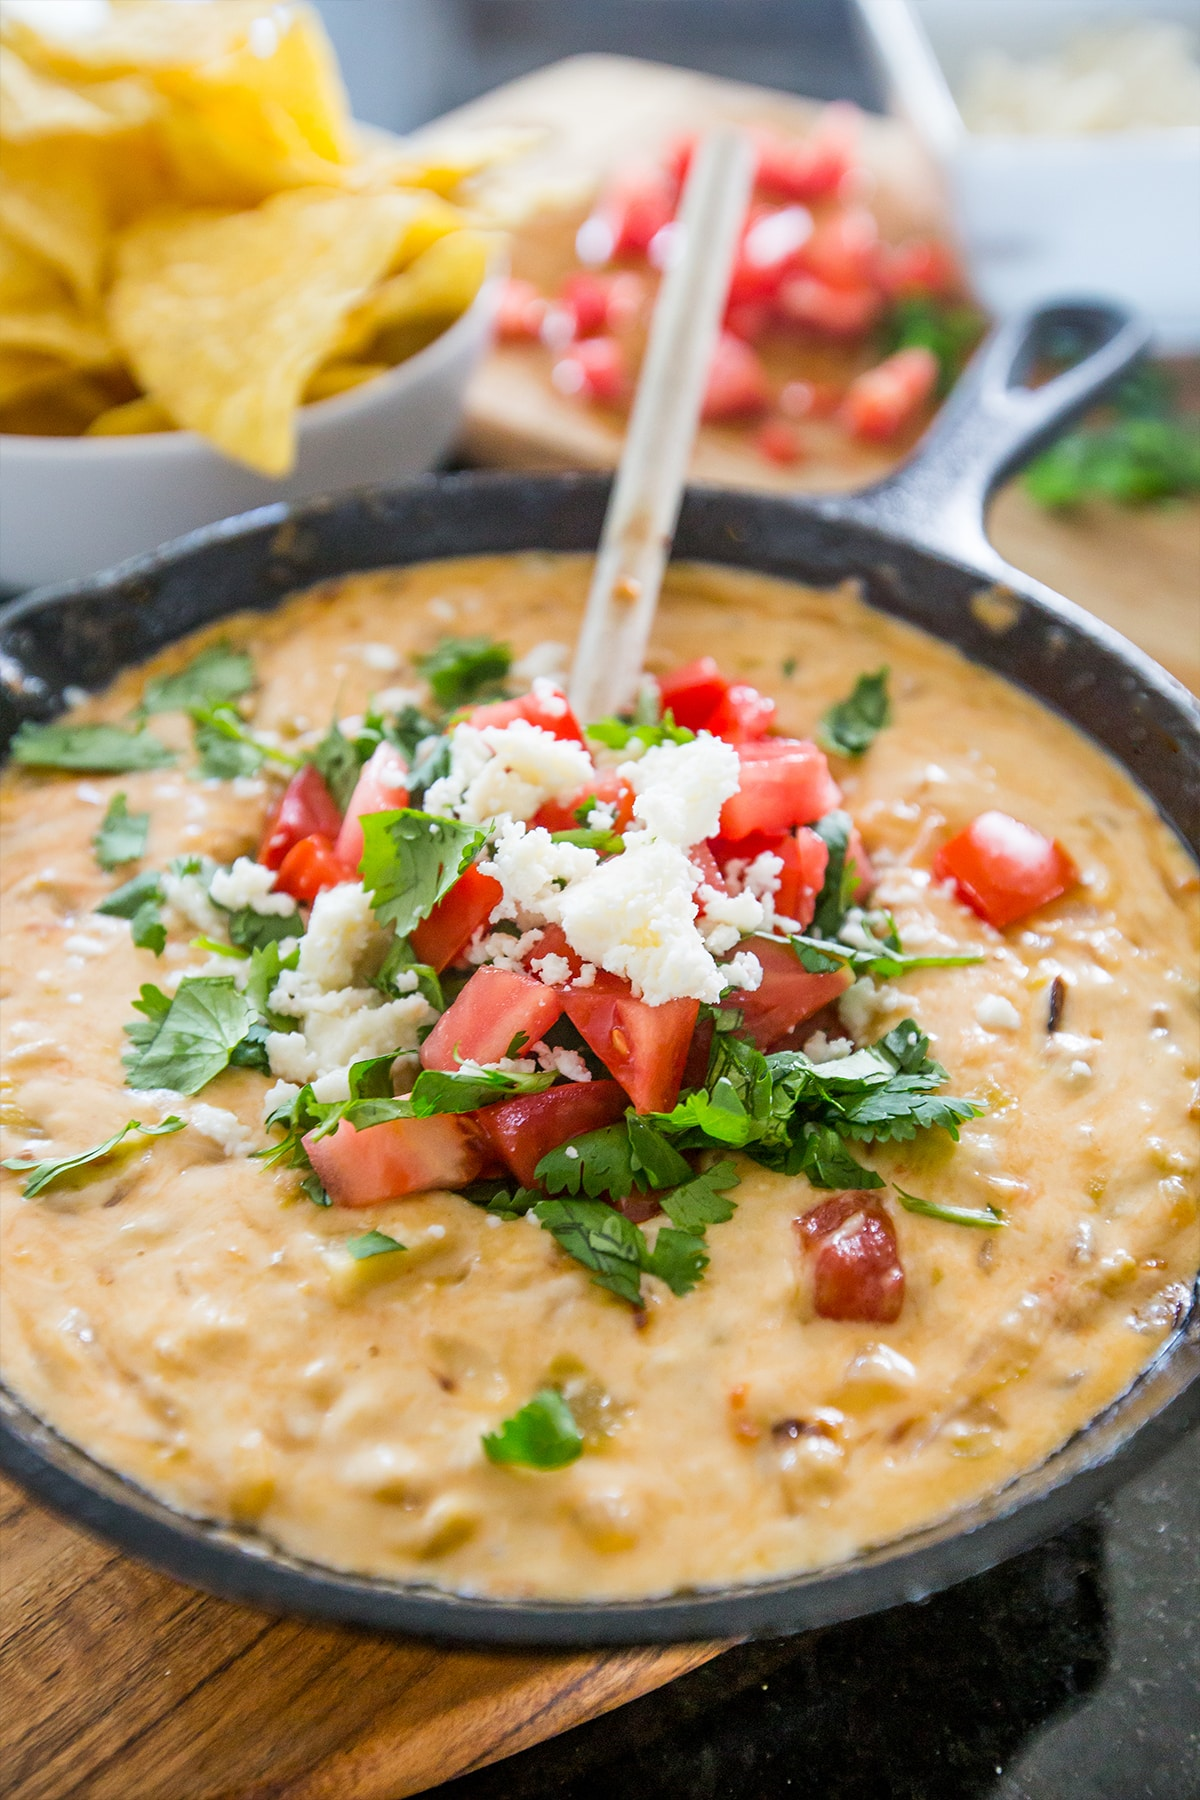 This is the most delicious queso- and so easy to make from fresh ingredients and real cheese!